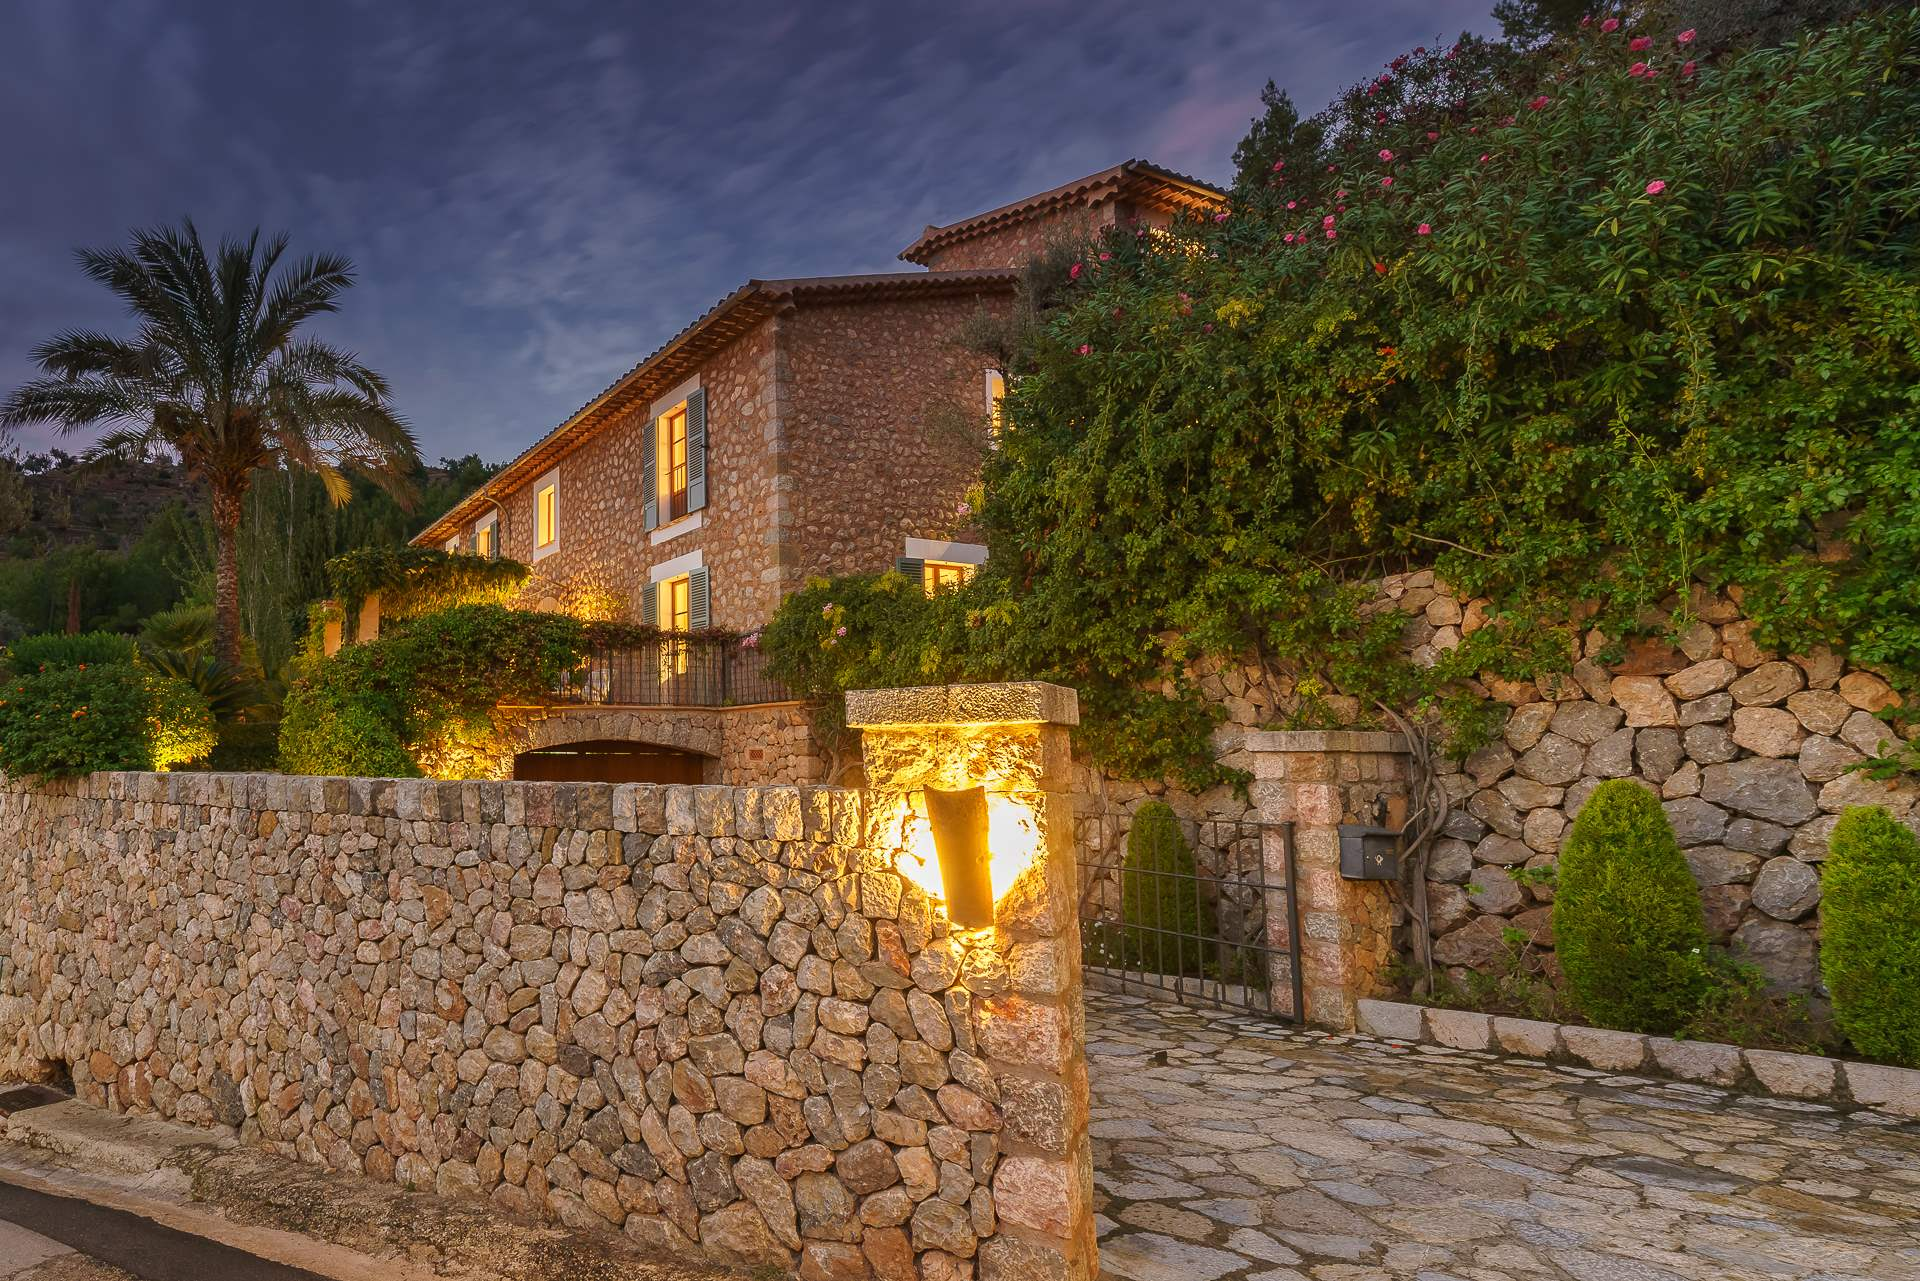 Sa Tanca, 3 Bedroom Rental, 3 bedroom villa in Soller & Deia, Majorca Photo #15